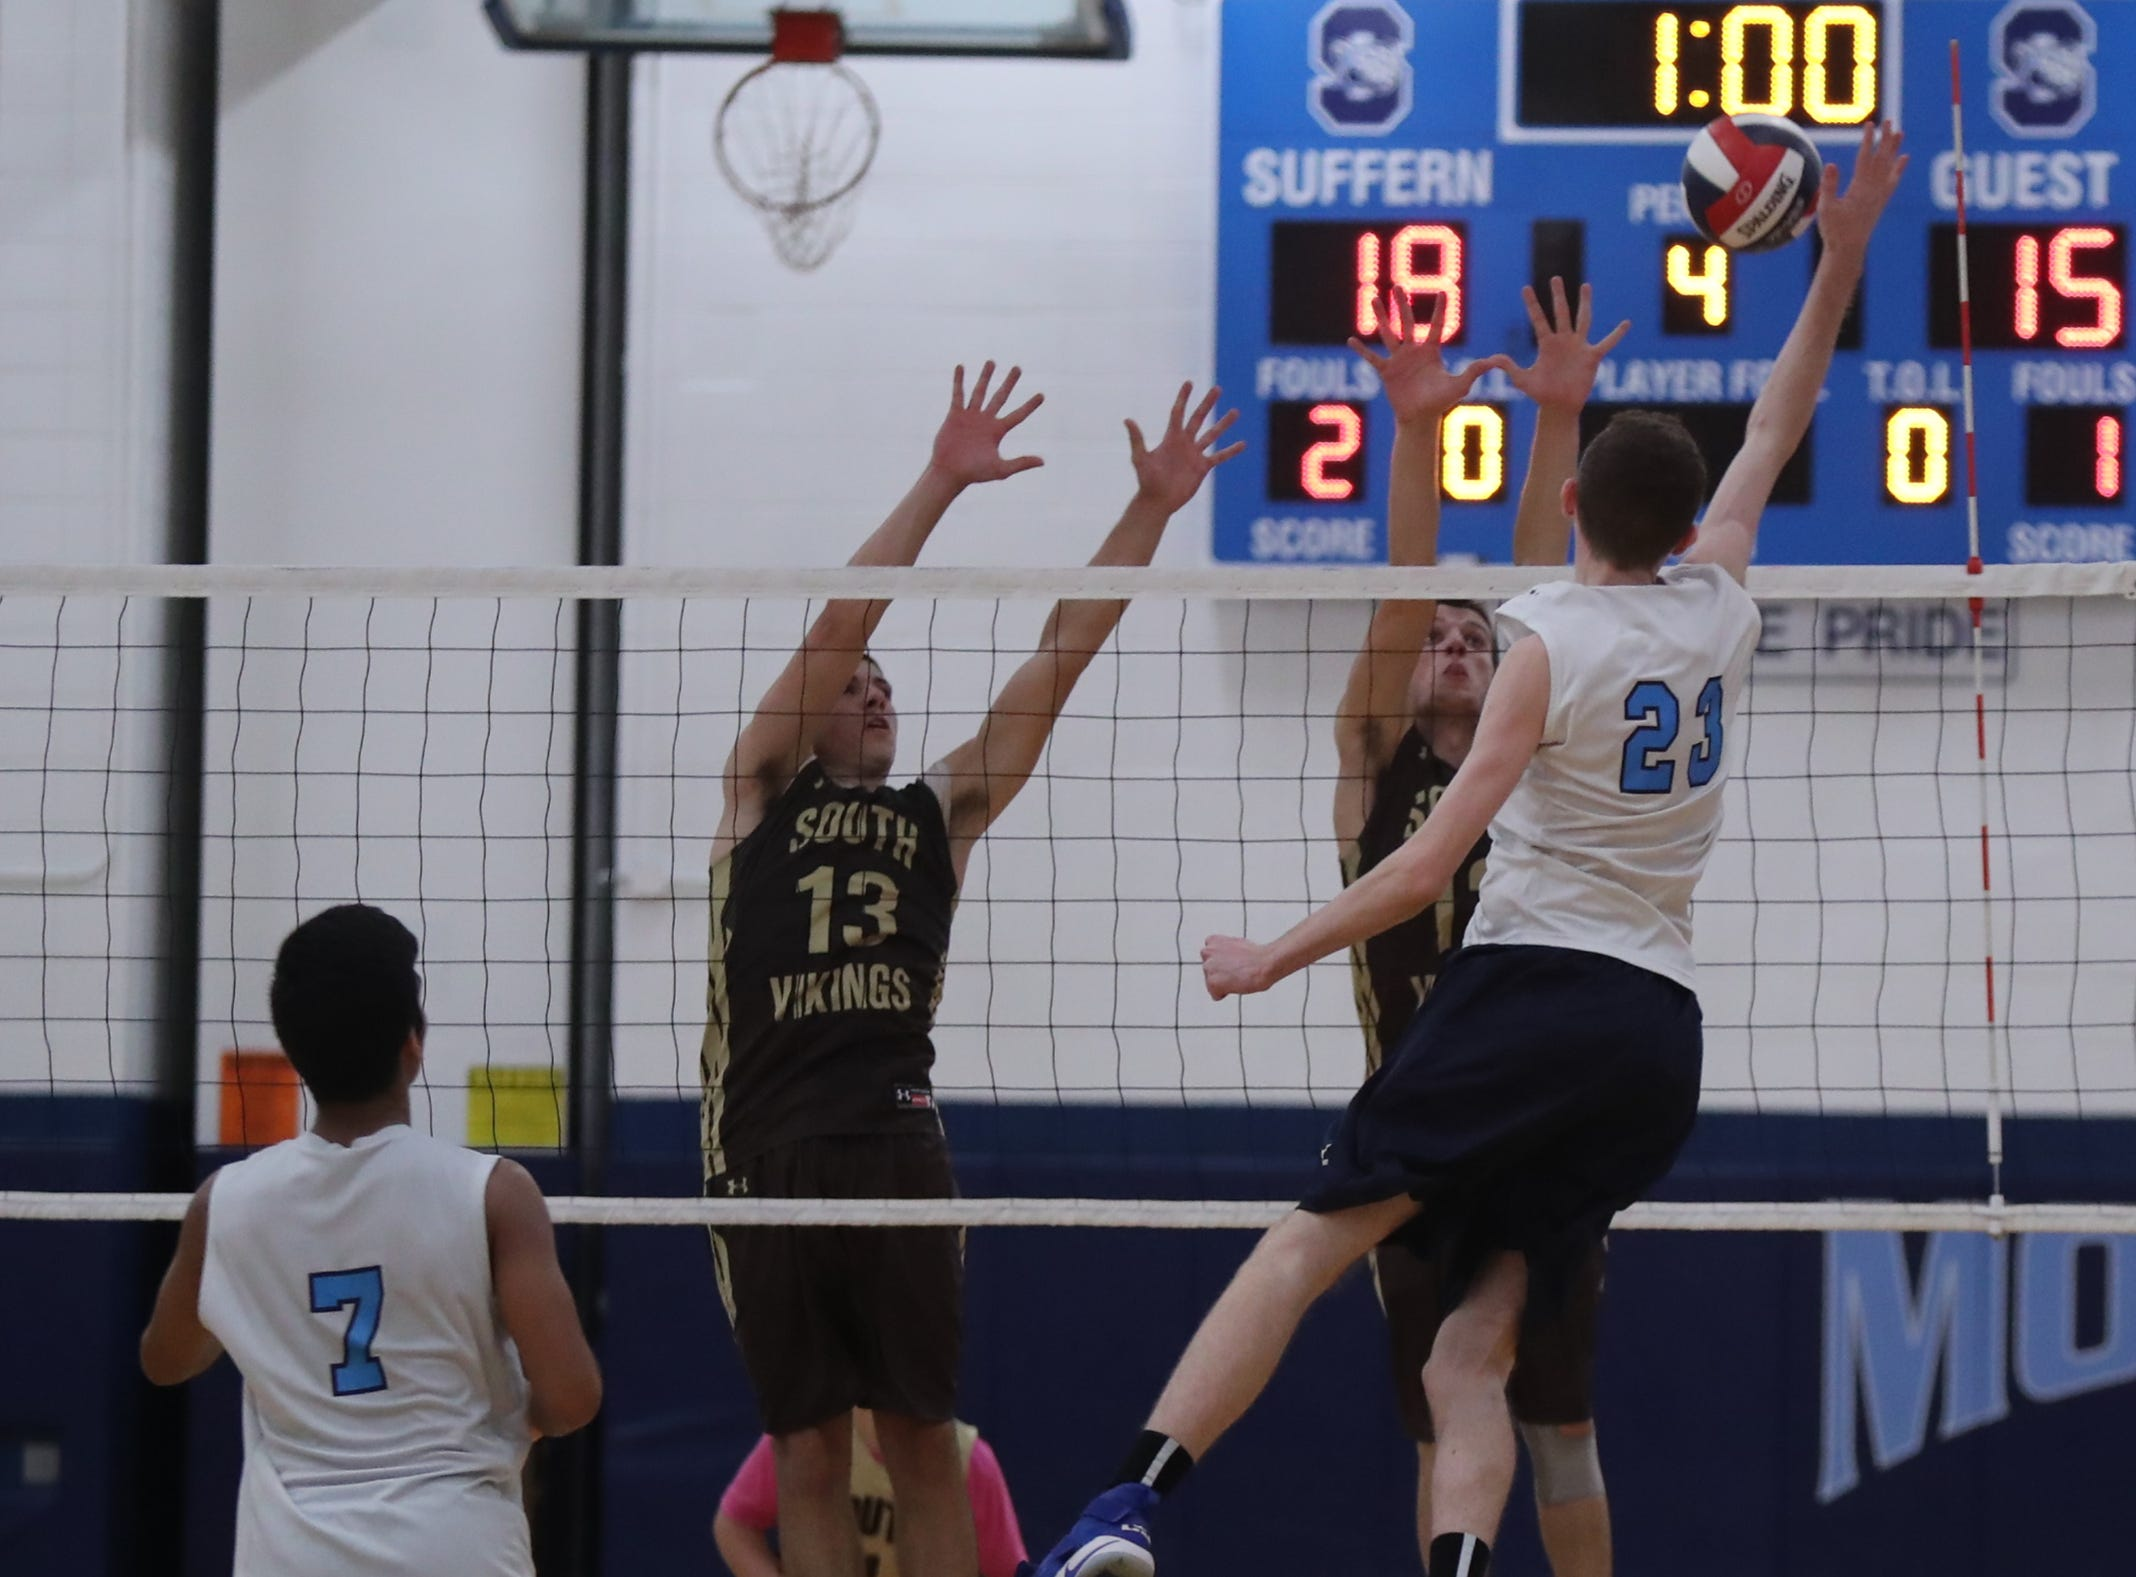 Suffern's Aidan Anderson (23) puts a shot over the net during their 3-1 win over  Clarkstown South in boys volleyball action at Suffern High School in Suffern on Thursday, October 11, 2018.